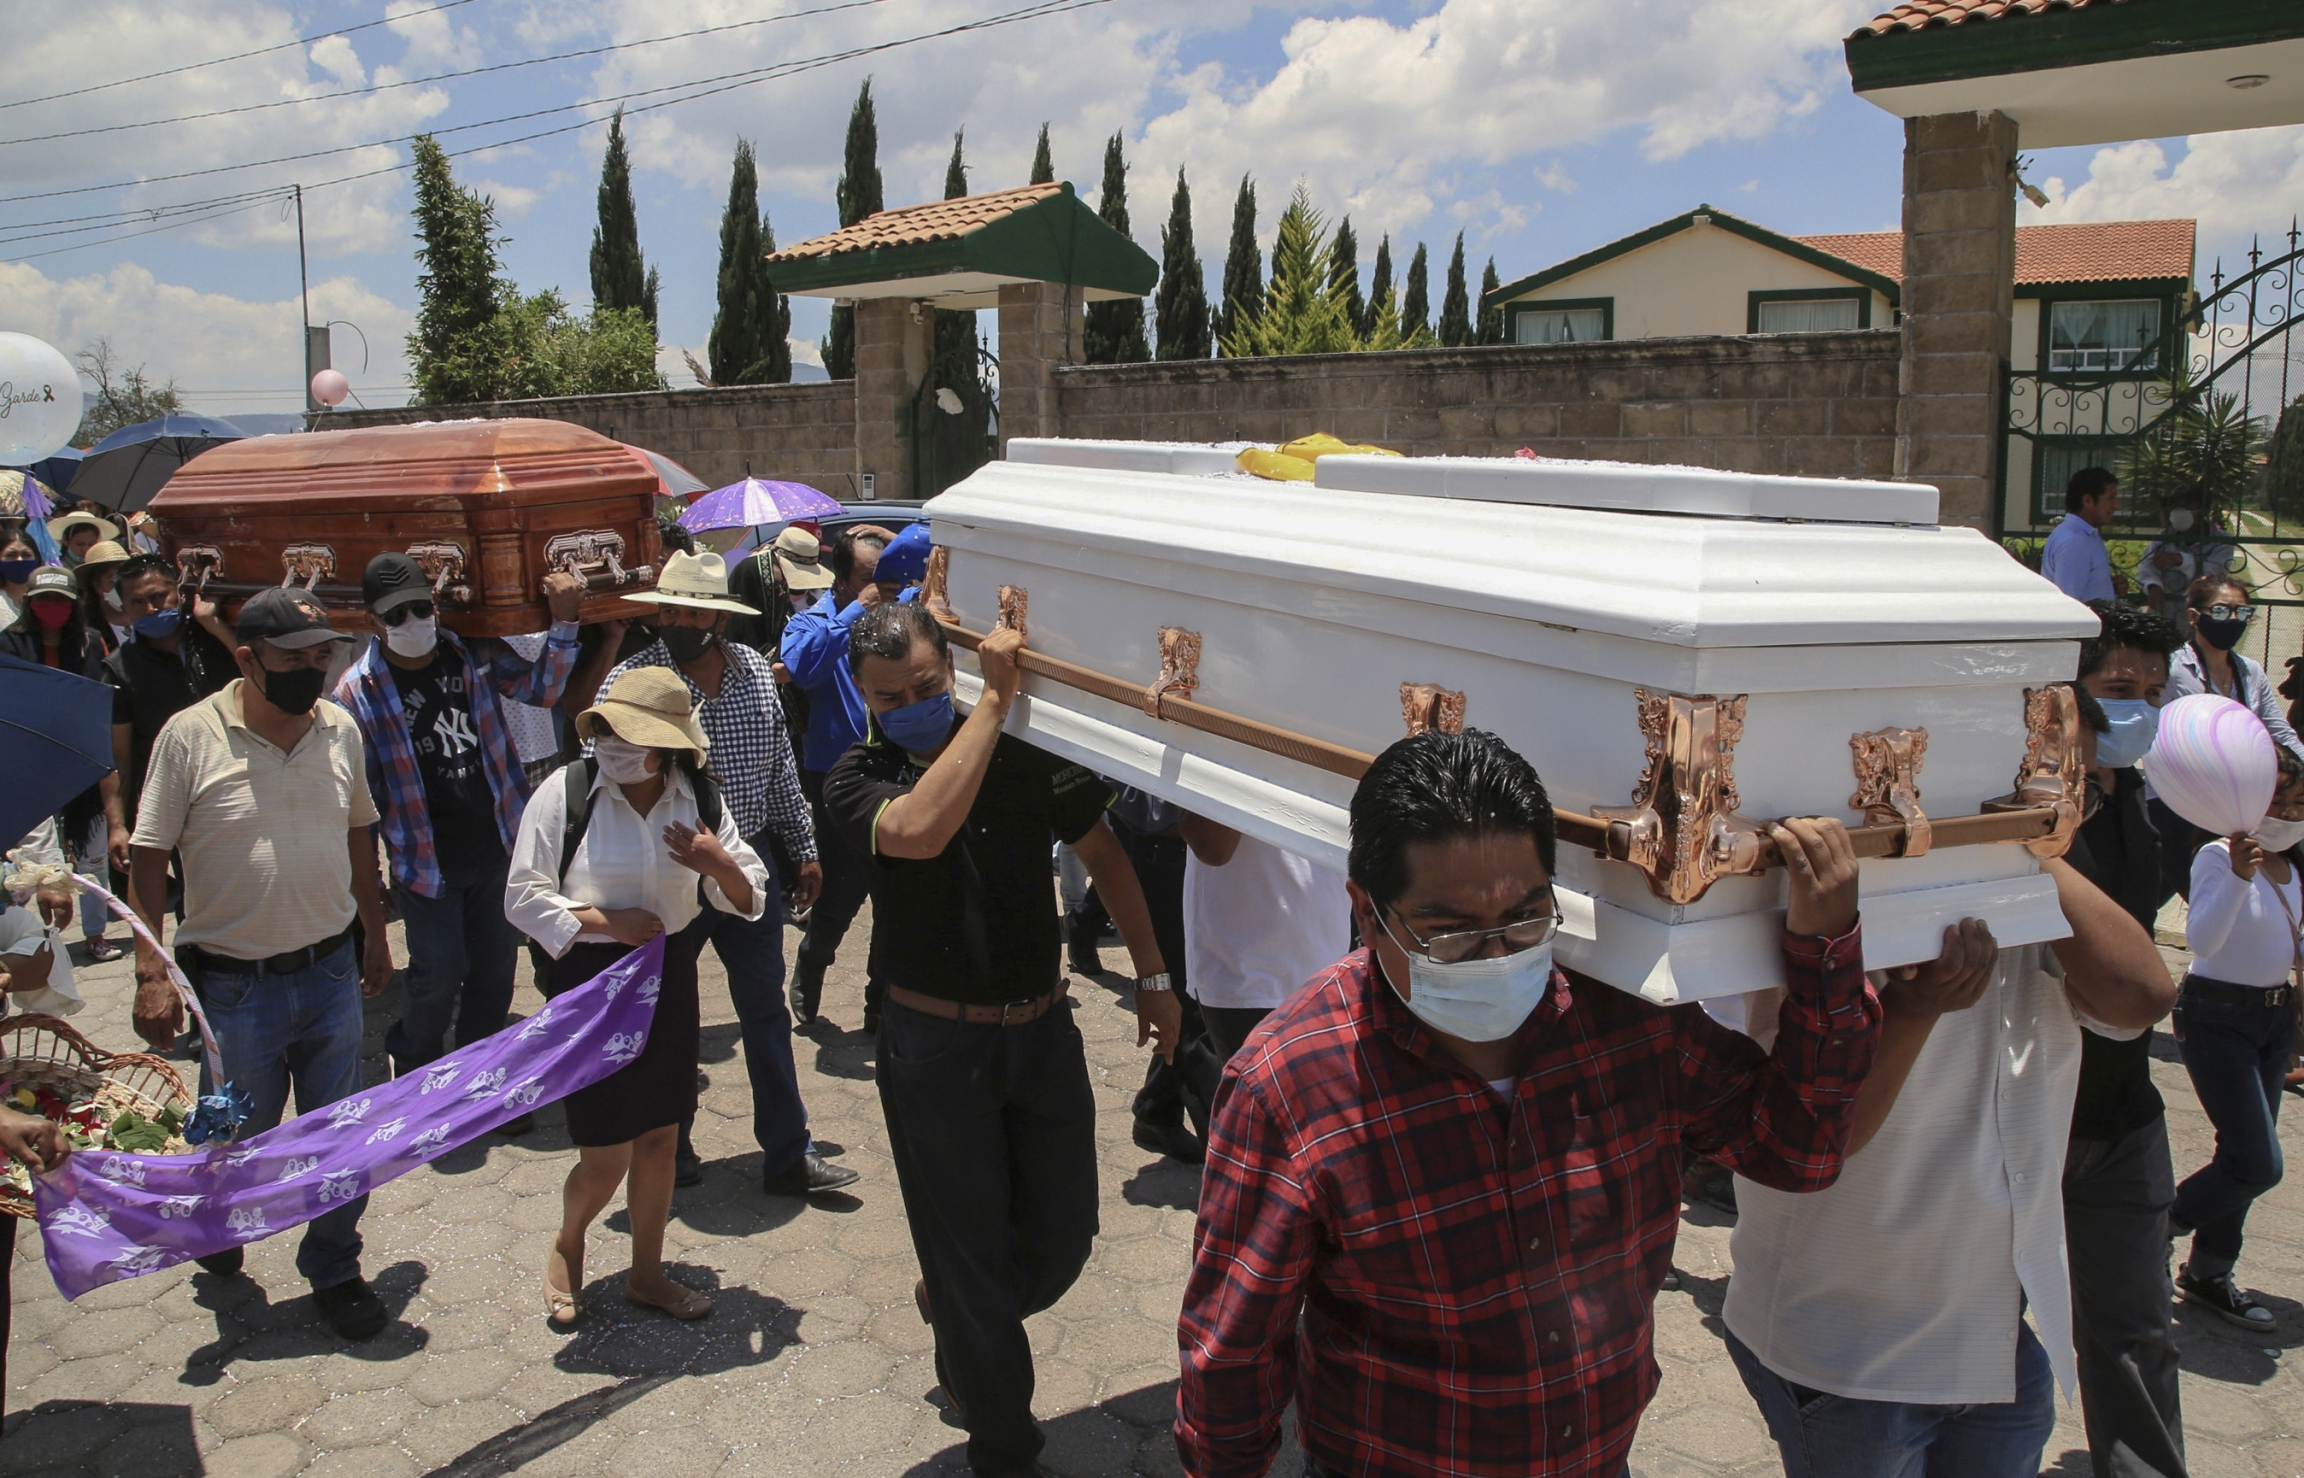 A crowd carries two caskets.